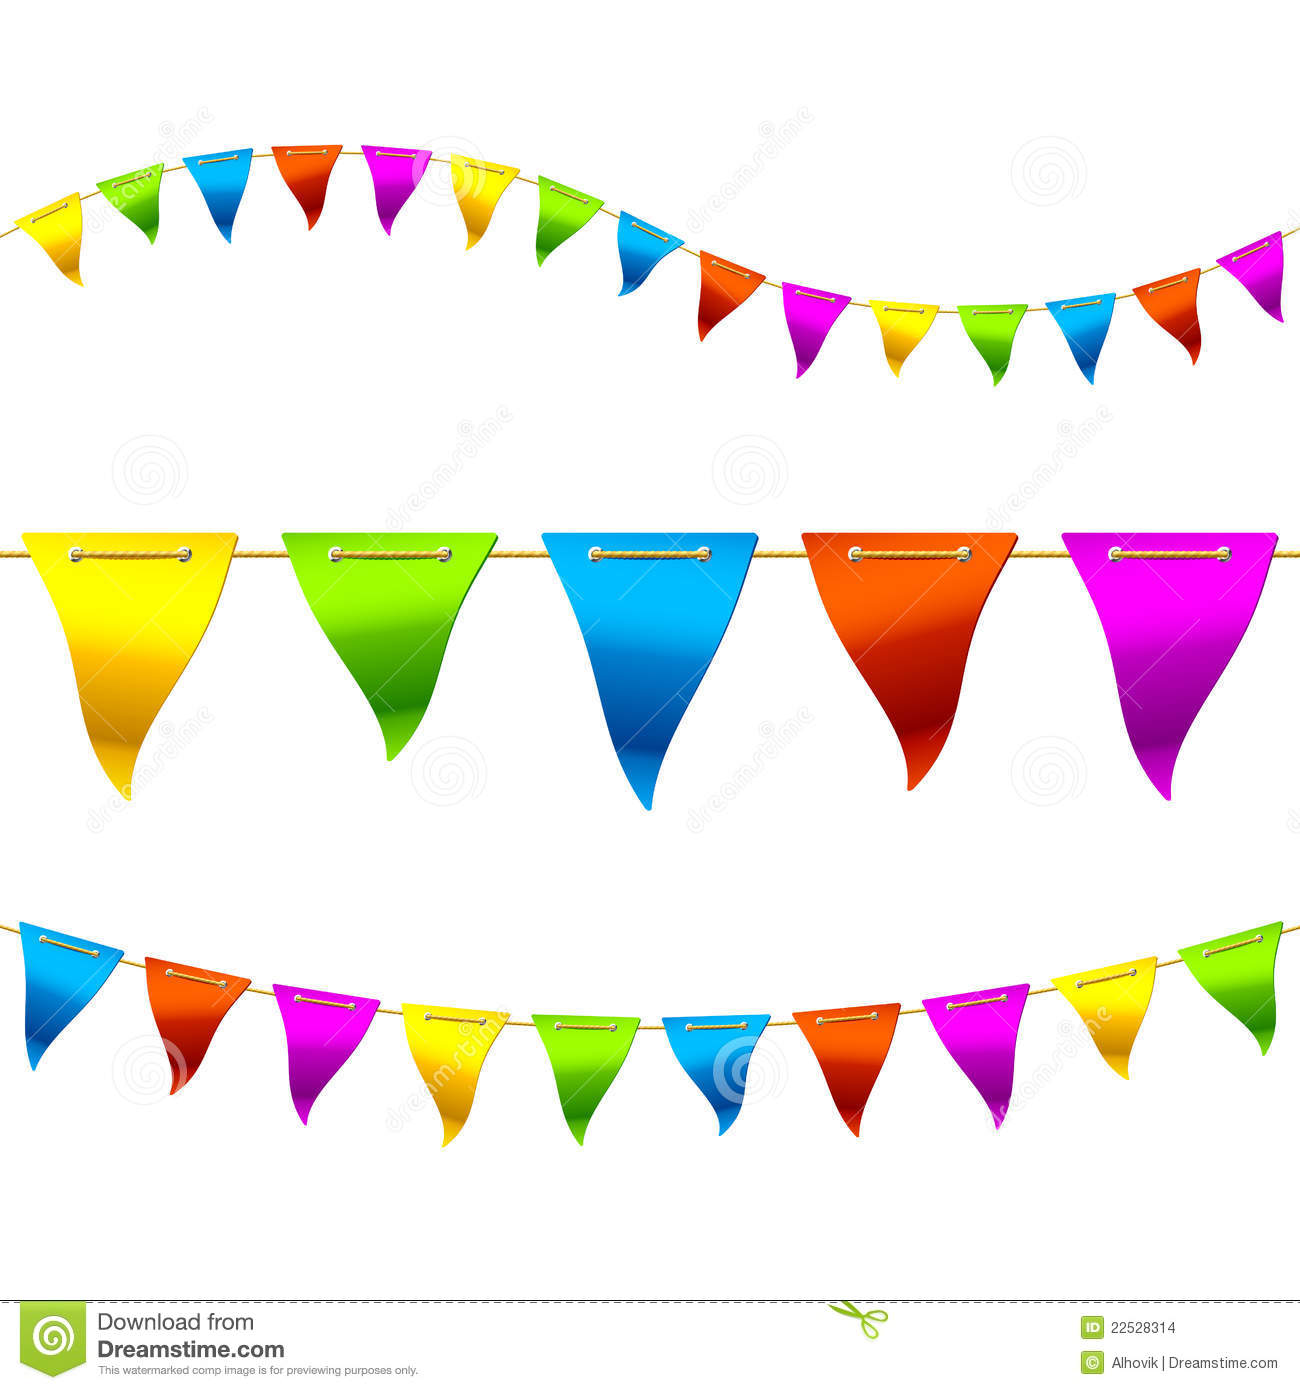 Stock Images Bunting Flags Image22528314 together with Provores1 as well Billy Blue College Of Design likewise Stock Image Rose Design Image9495651 besides London Houses. on architecture design